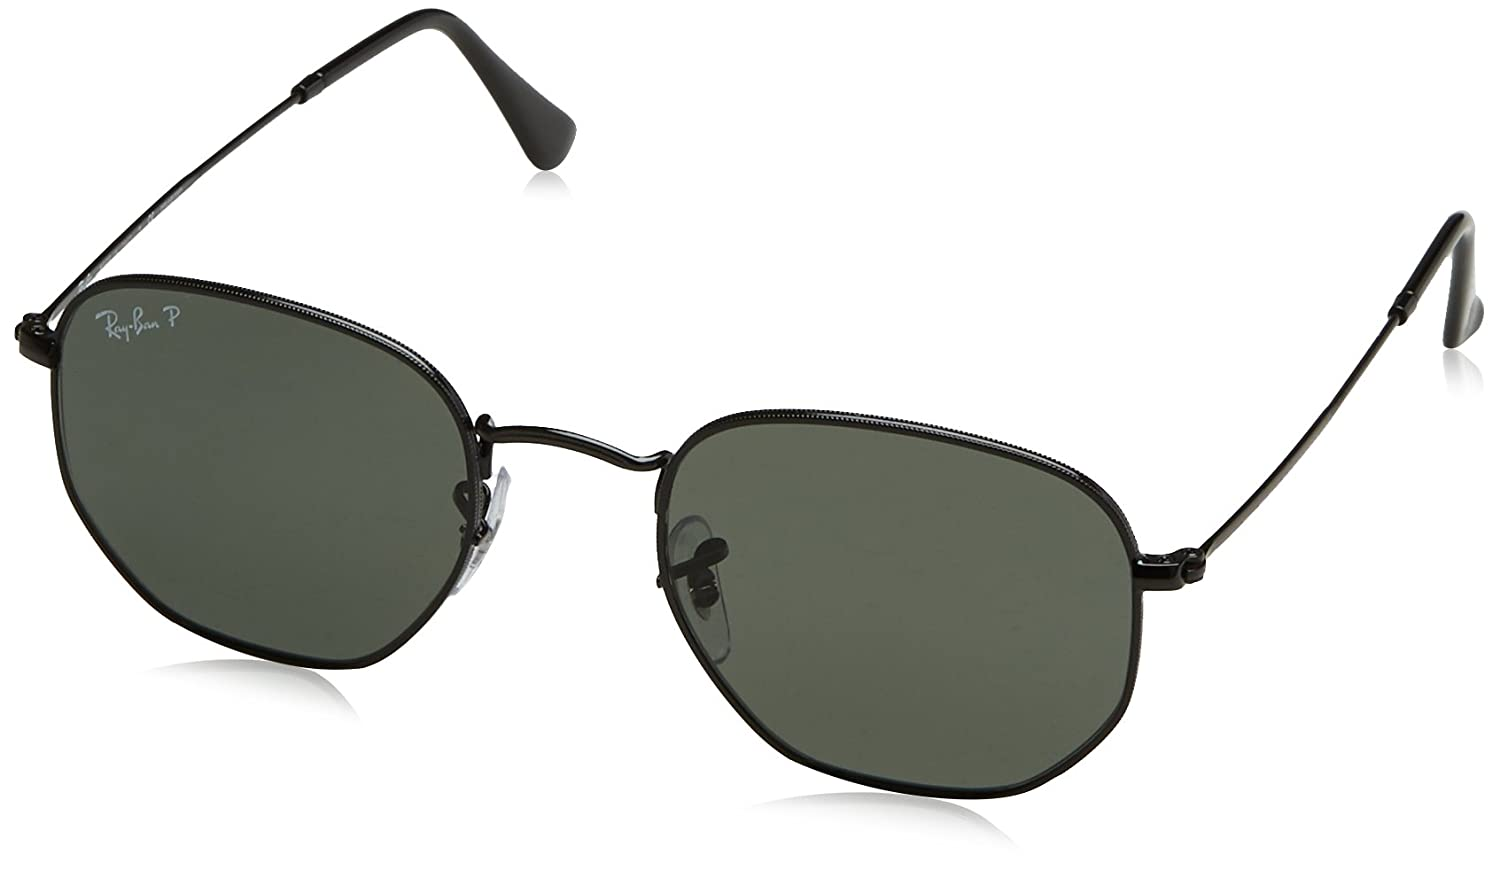 32807929d4 Amazon.com  Ray-Ban Men s Hexagonal Polarized Square Sunglasses ...